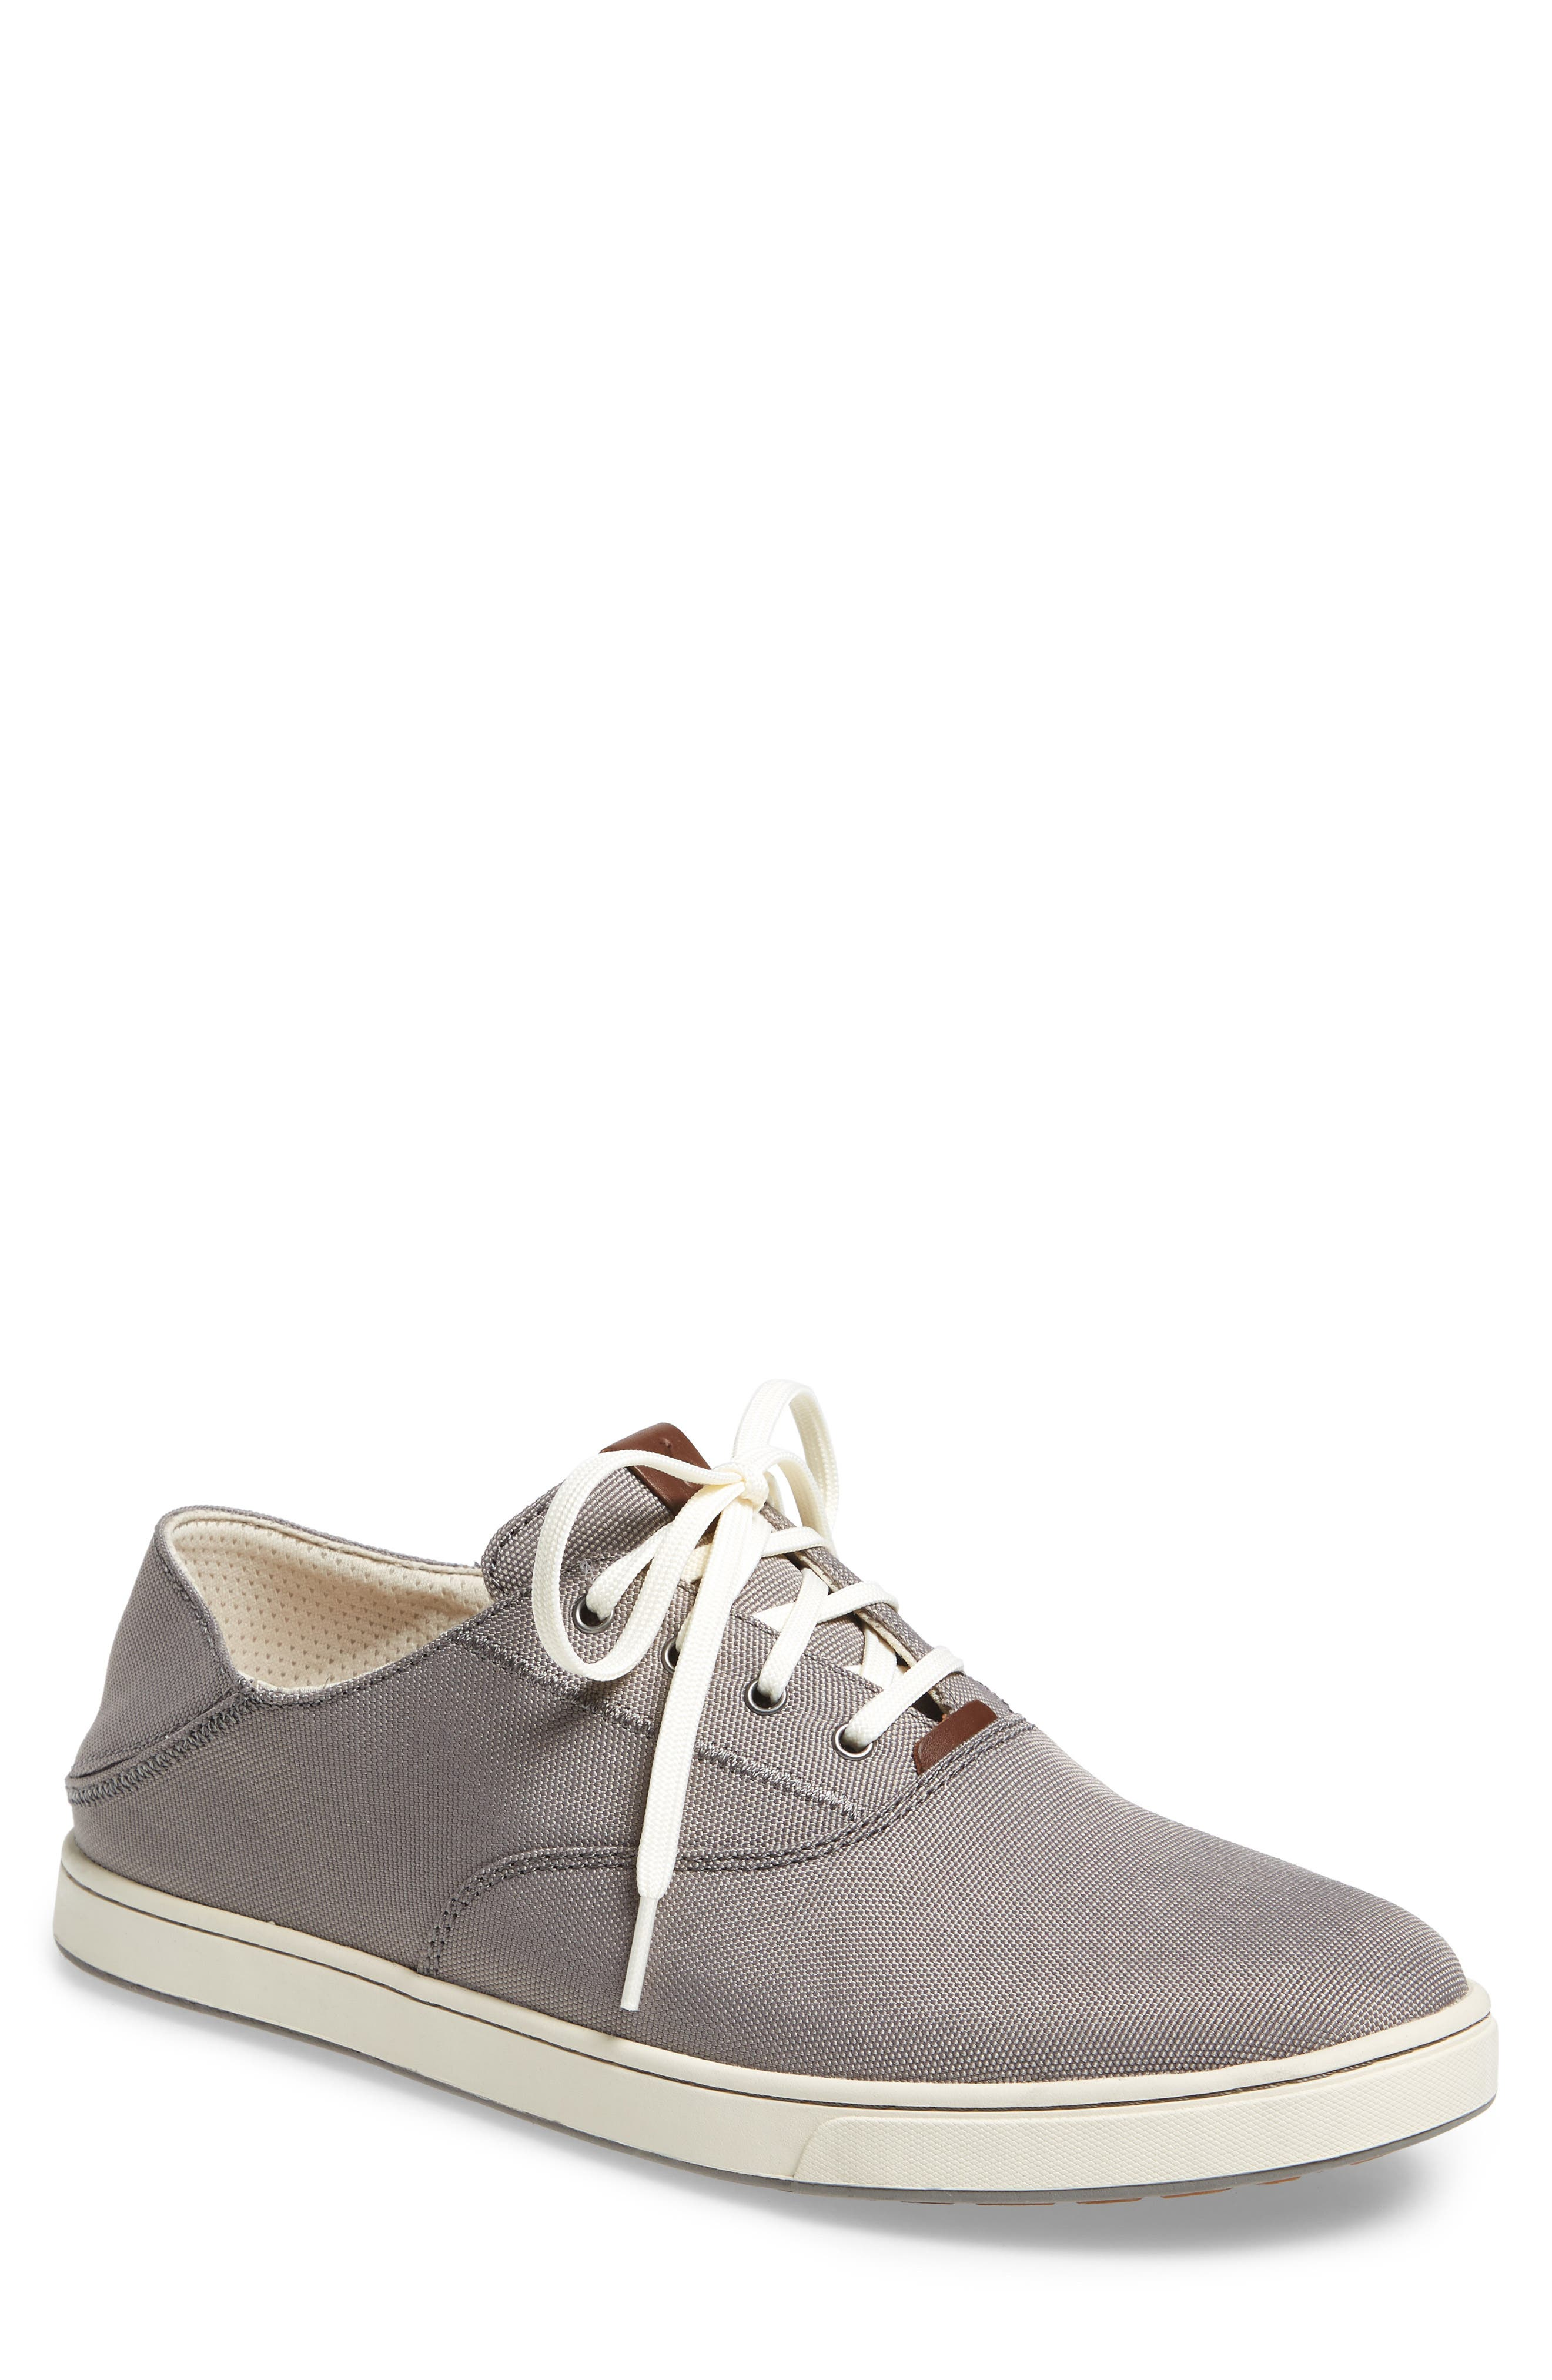 Kahu Collapsible Lace-Up Sneaker,                             Alternate thumbnail 4, color,                             Fog/ Off White